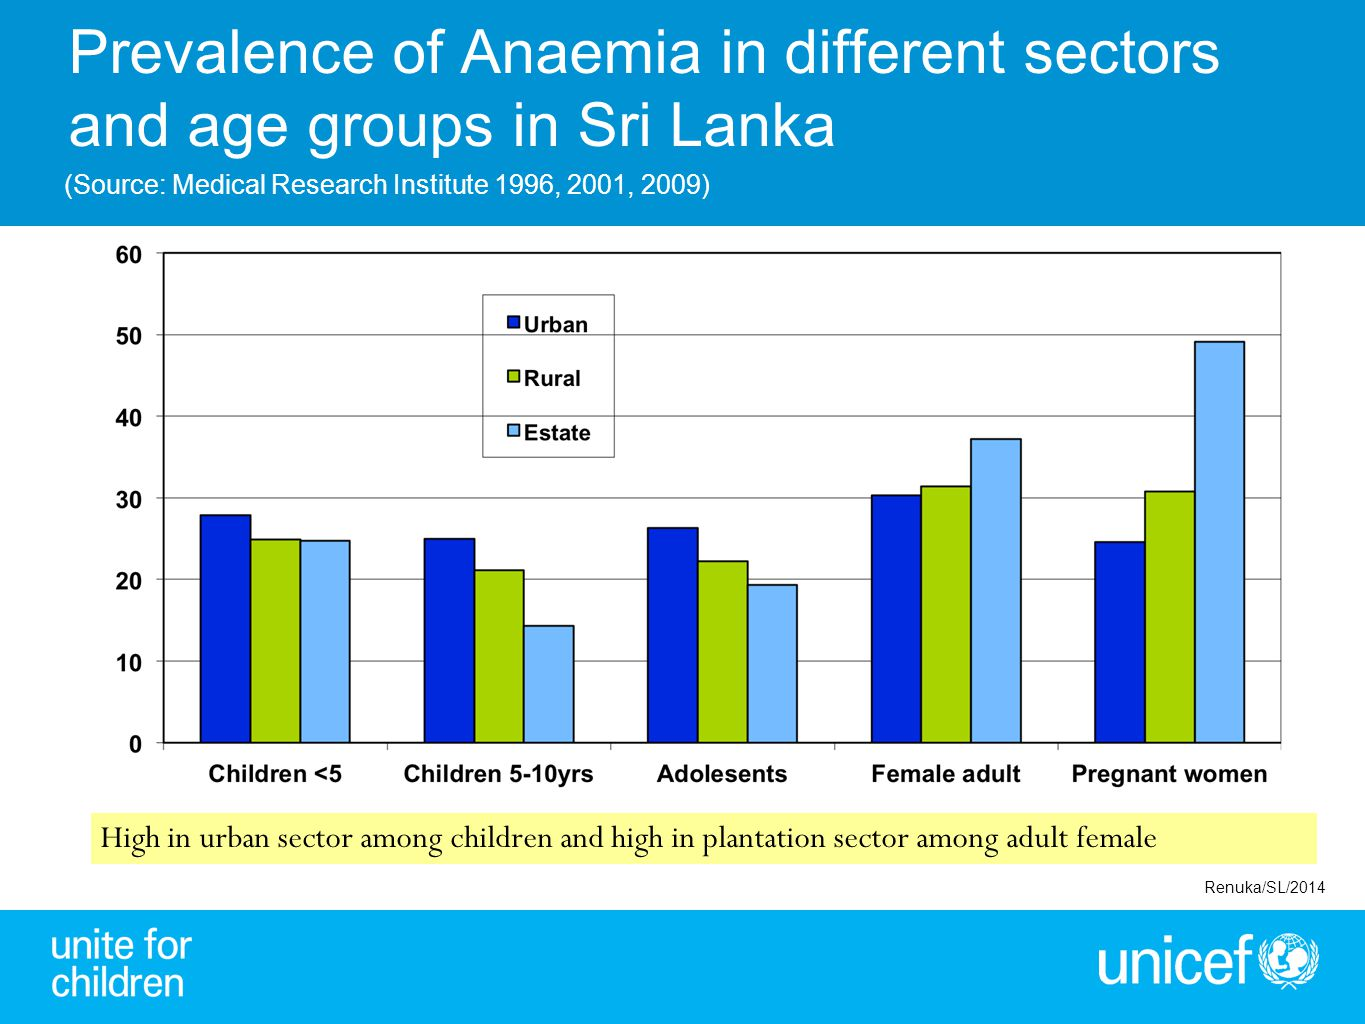 Prevalence of Anaemia in different sectors and age groups in Sri Lanka